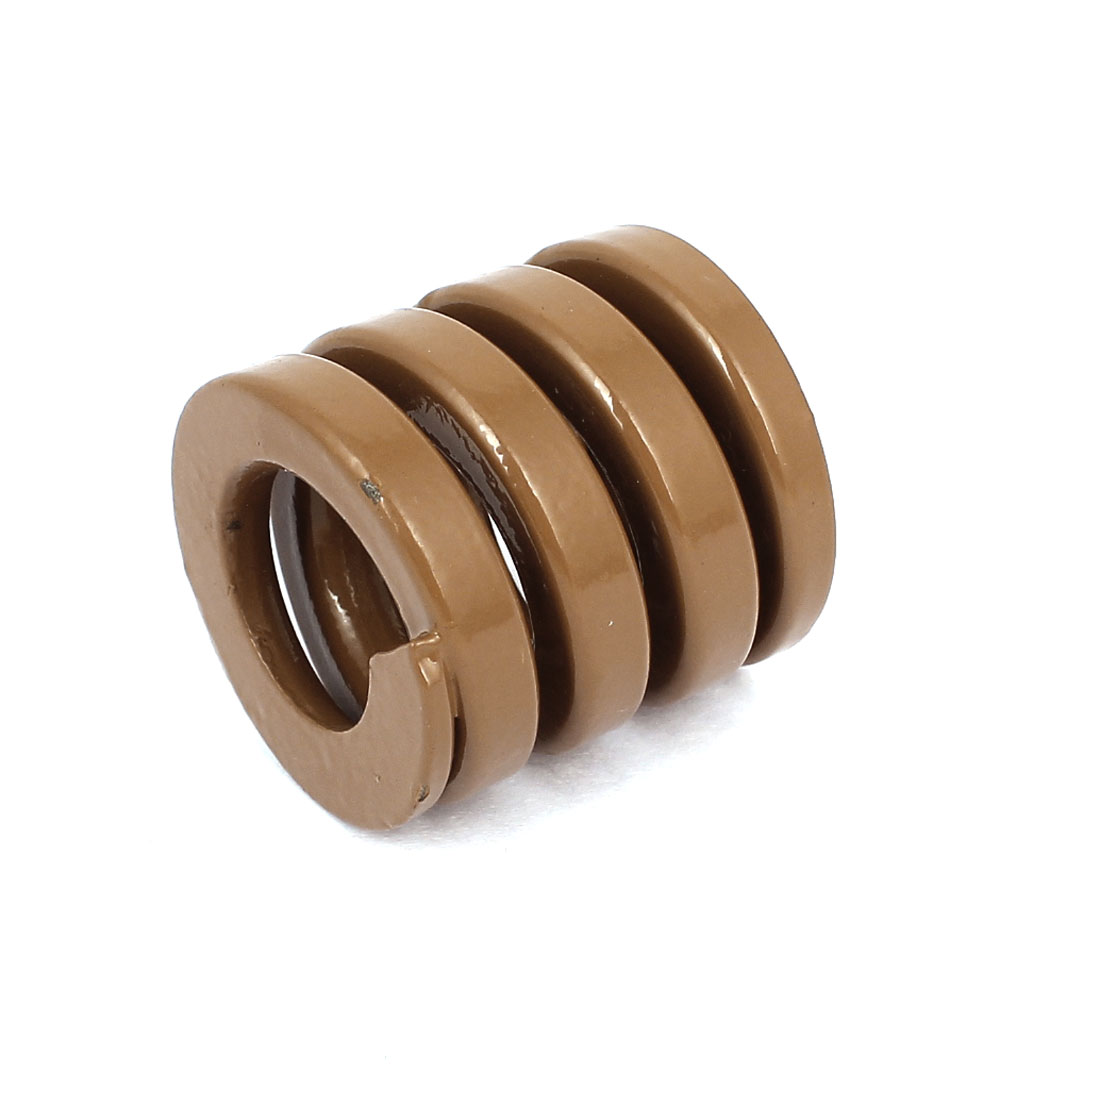 30mm OD 30mm Long Heavy Load Coil Stamping Compression Mold Die Spring Brown